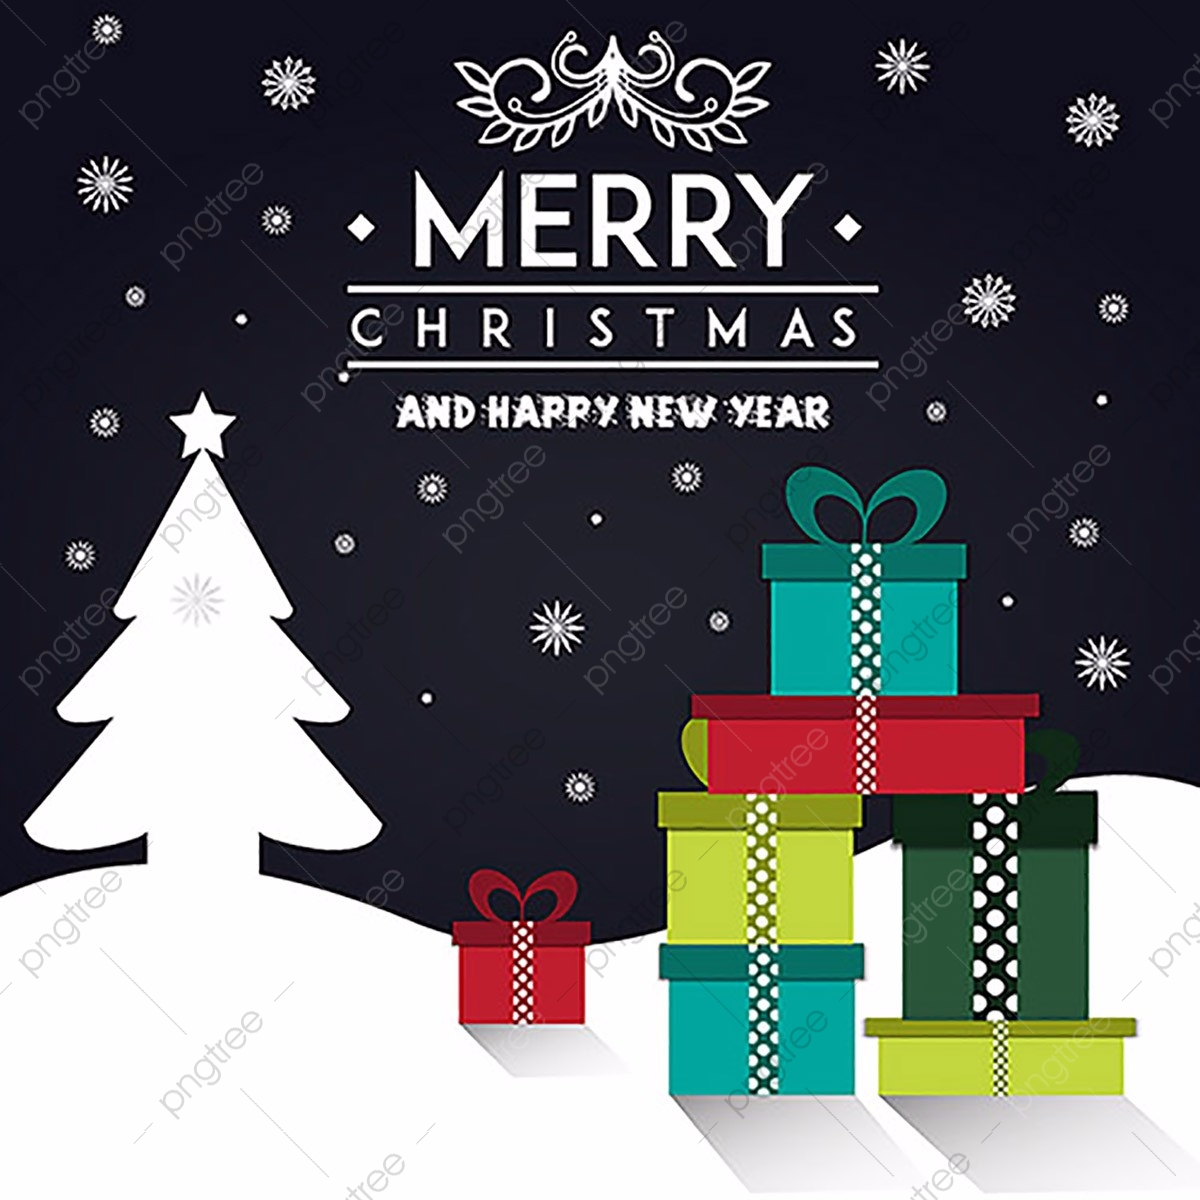 Simple Vector Christmas Backgrounds Christmas Vector